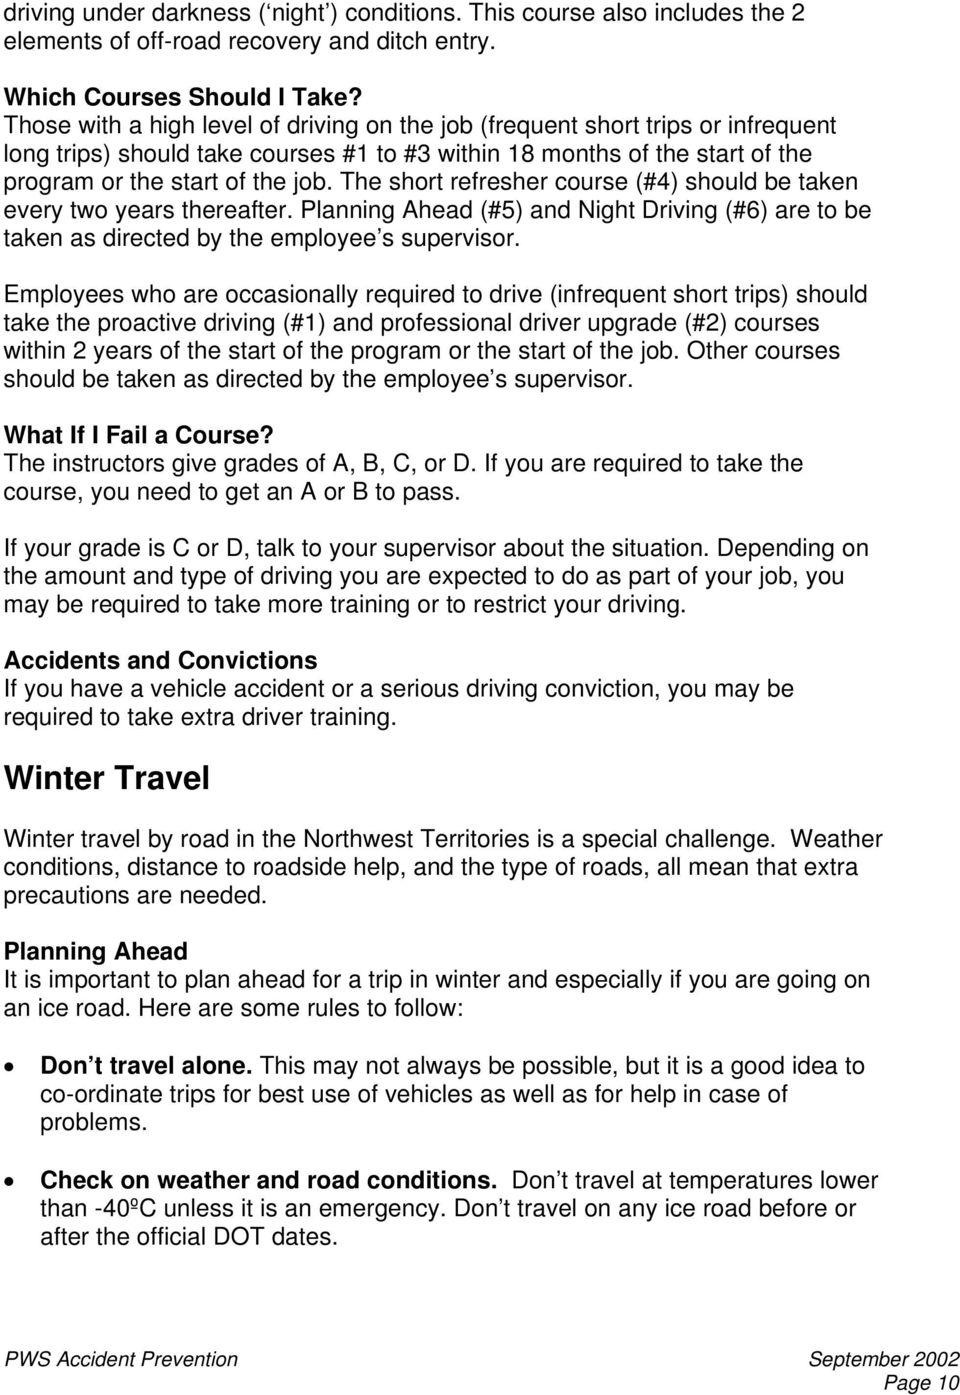 The short refresher course (#4) should be taken every two years thereafter. Planning Ahead (#5) and Night Driving (#6) are to be taken as directed by the employee s supervisor.